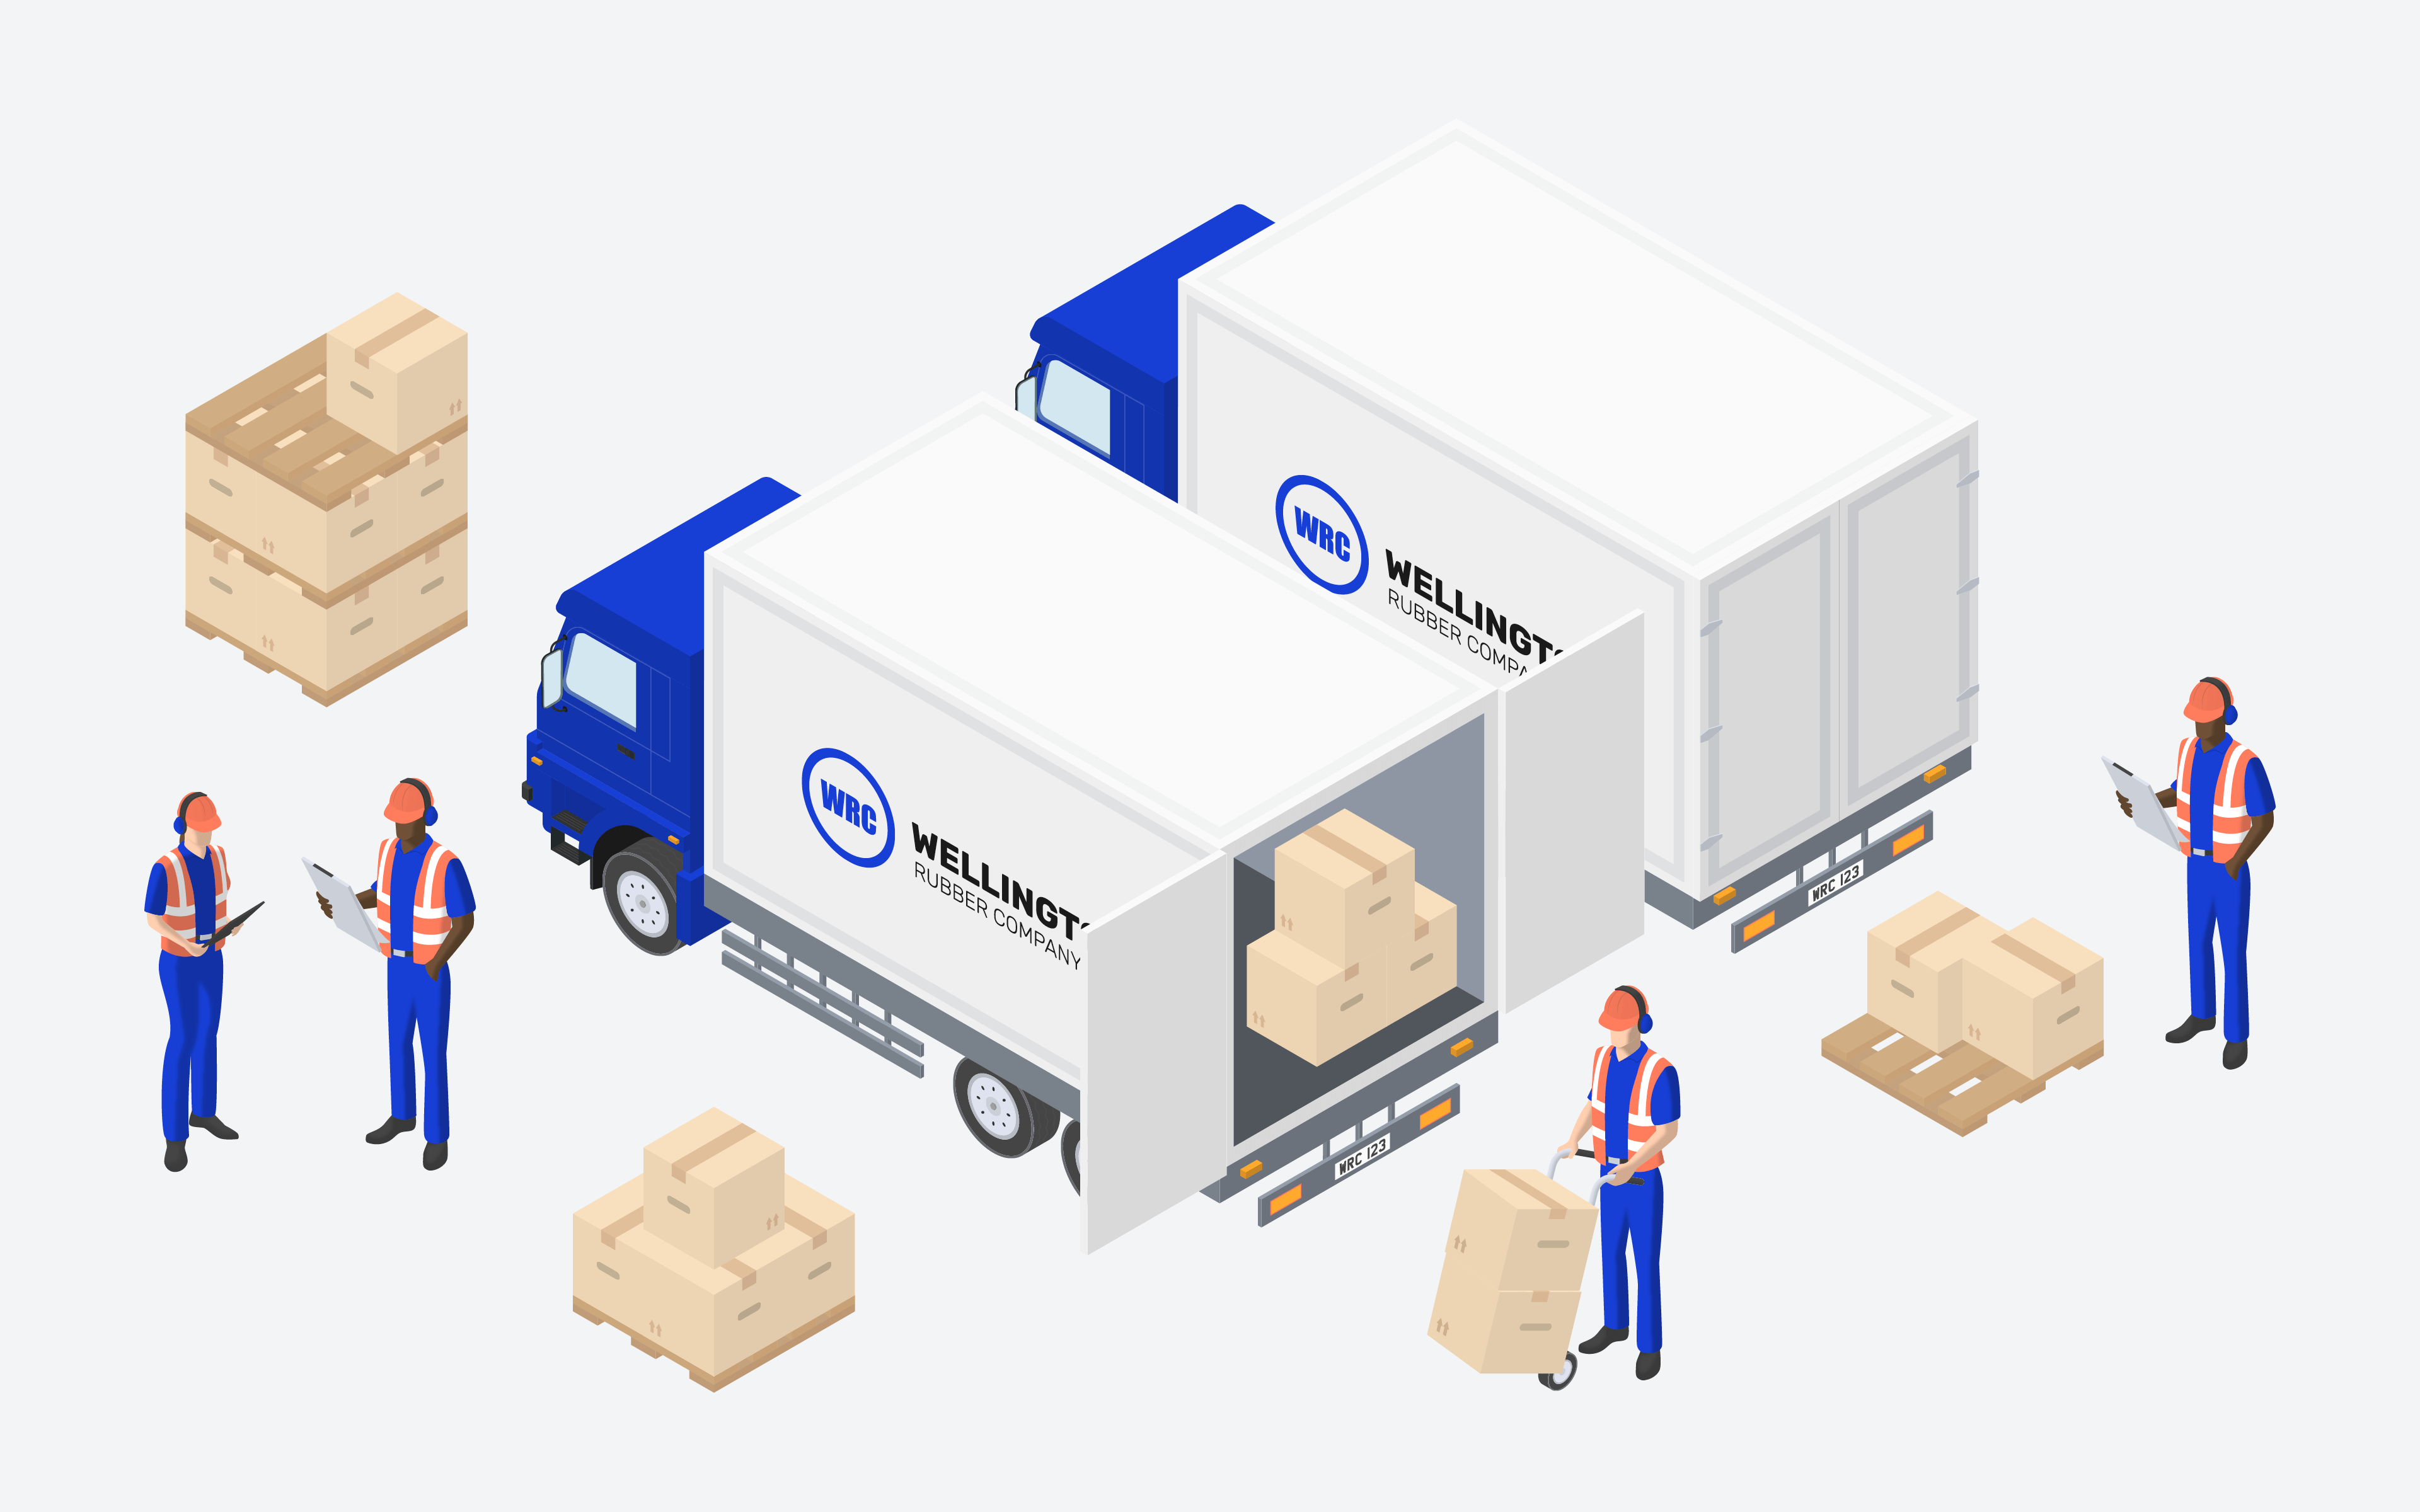 Van lorry and factory workers illustration